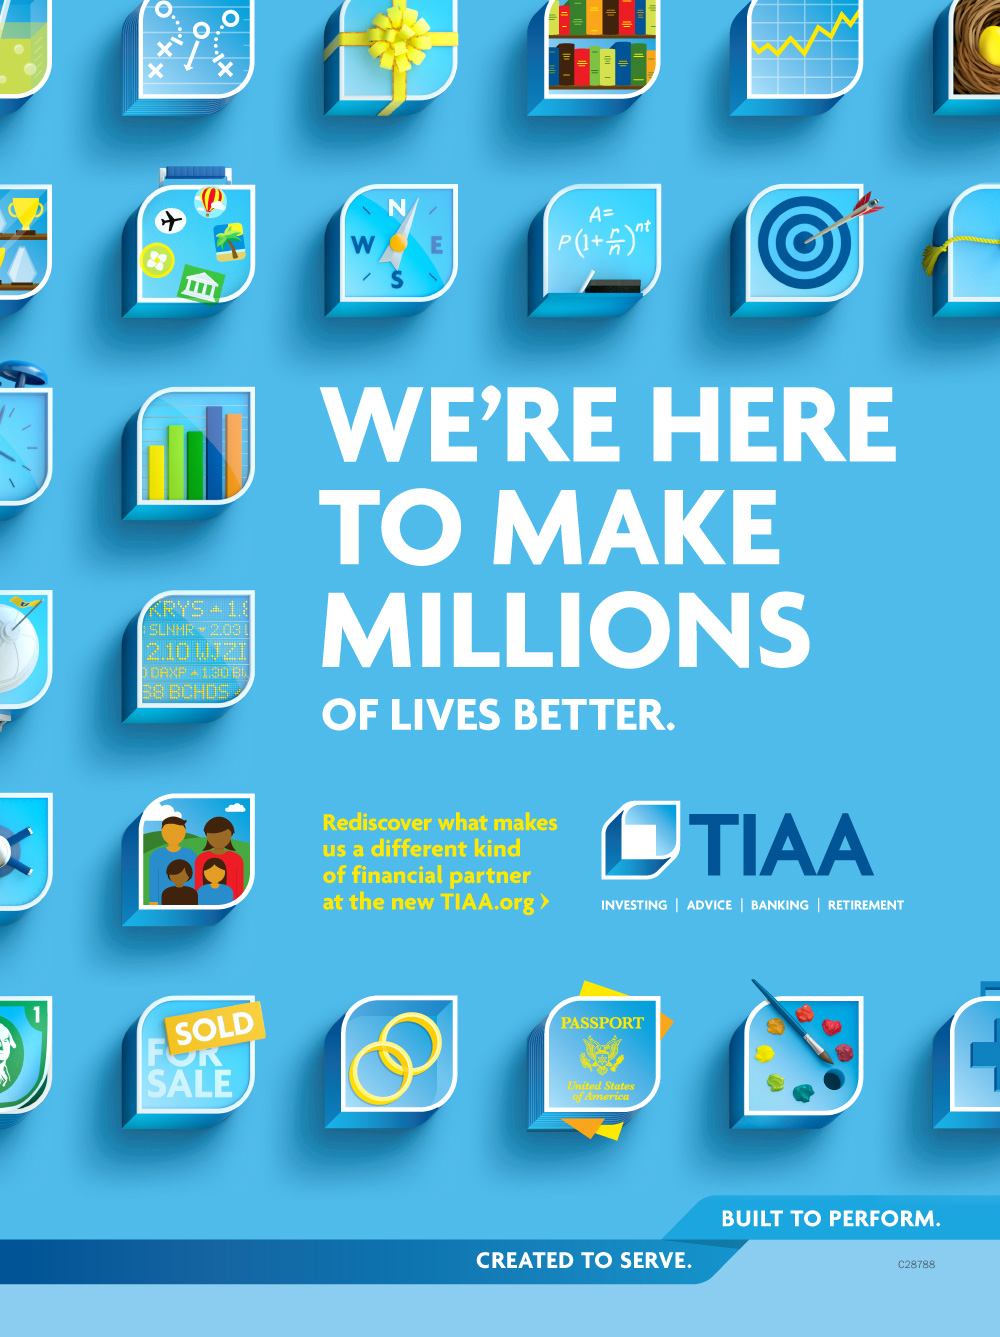 Brand New: New Name and Logo for TIAA.